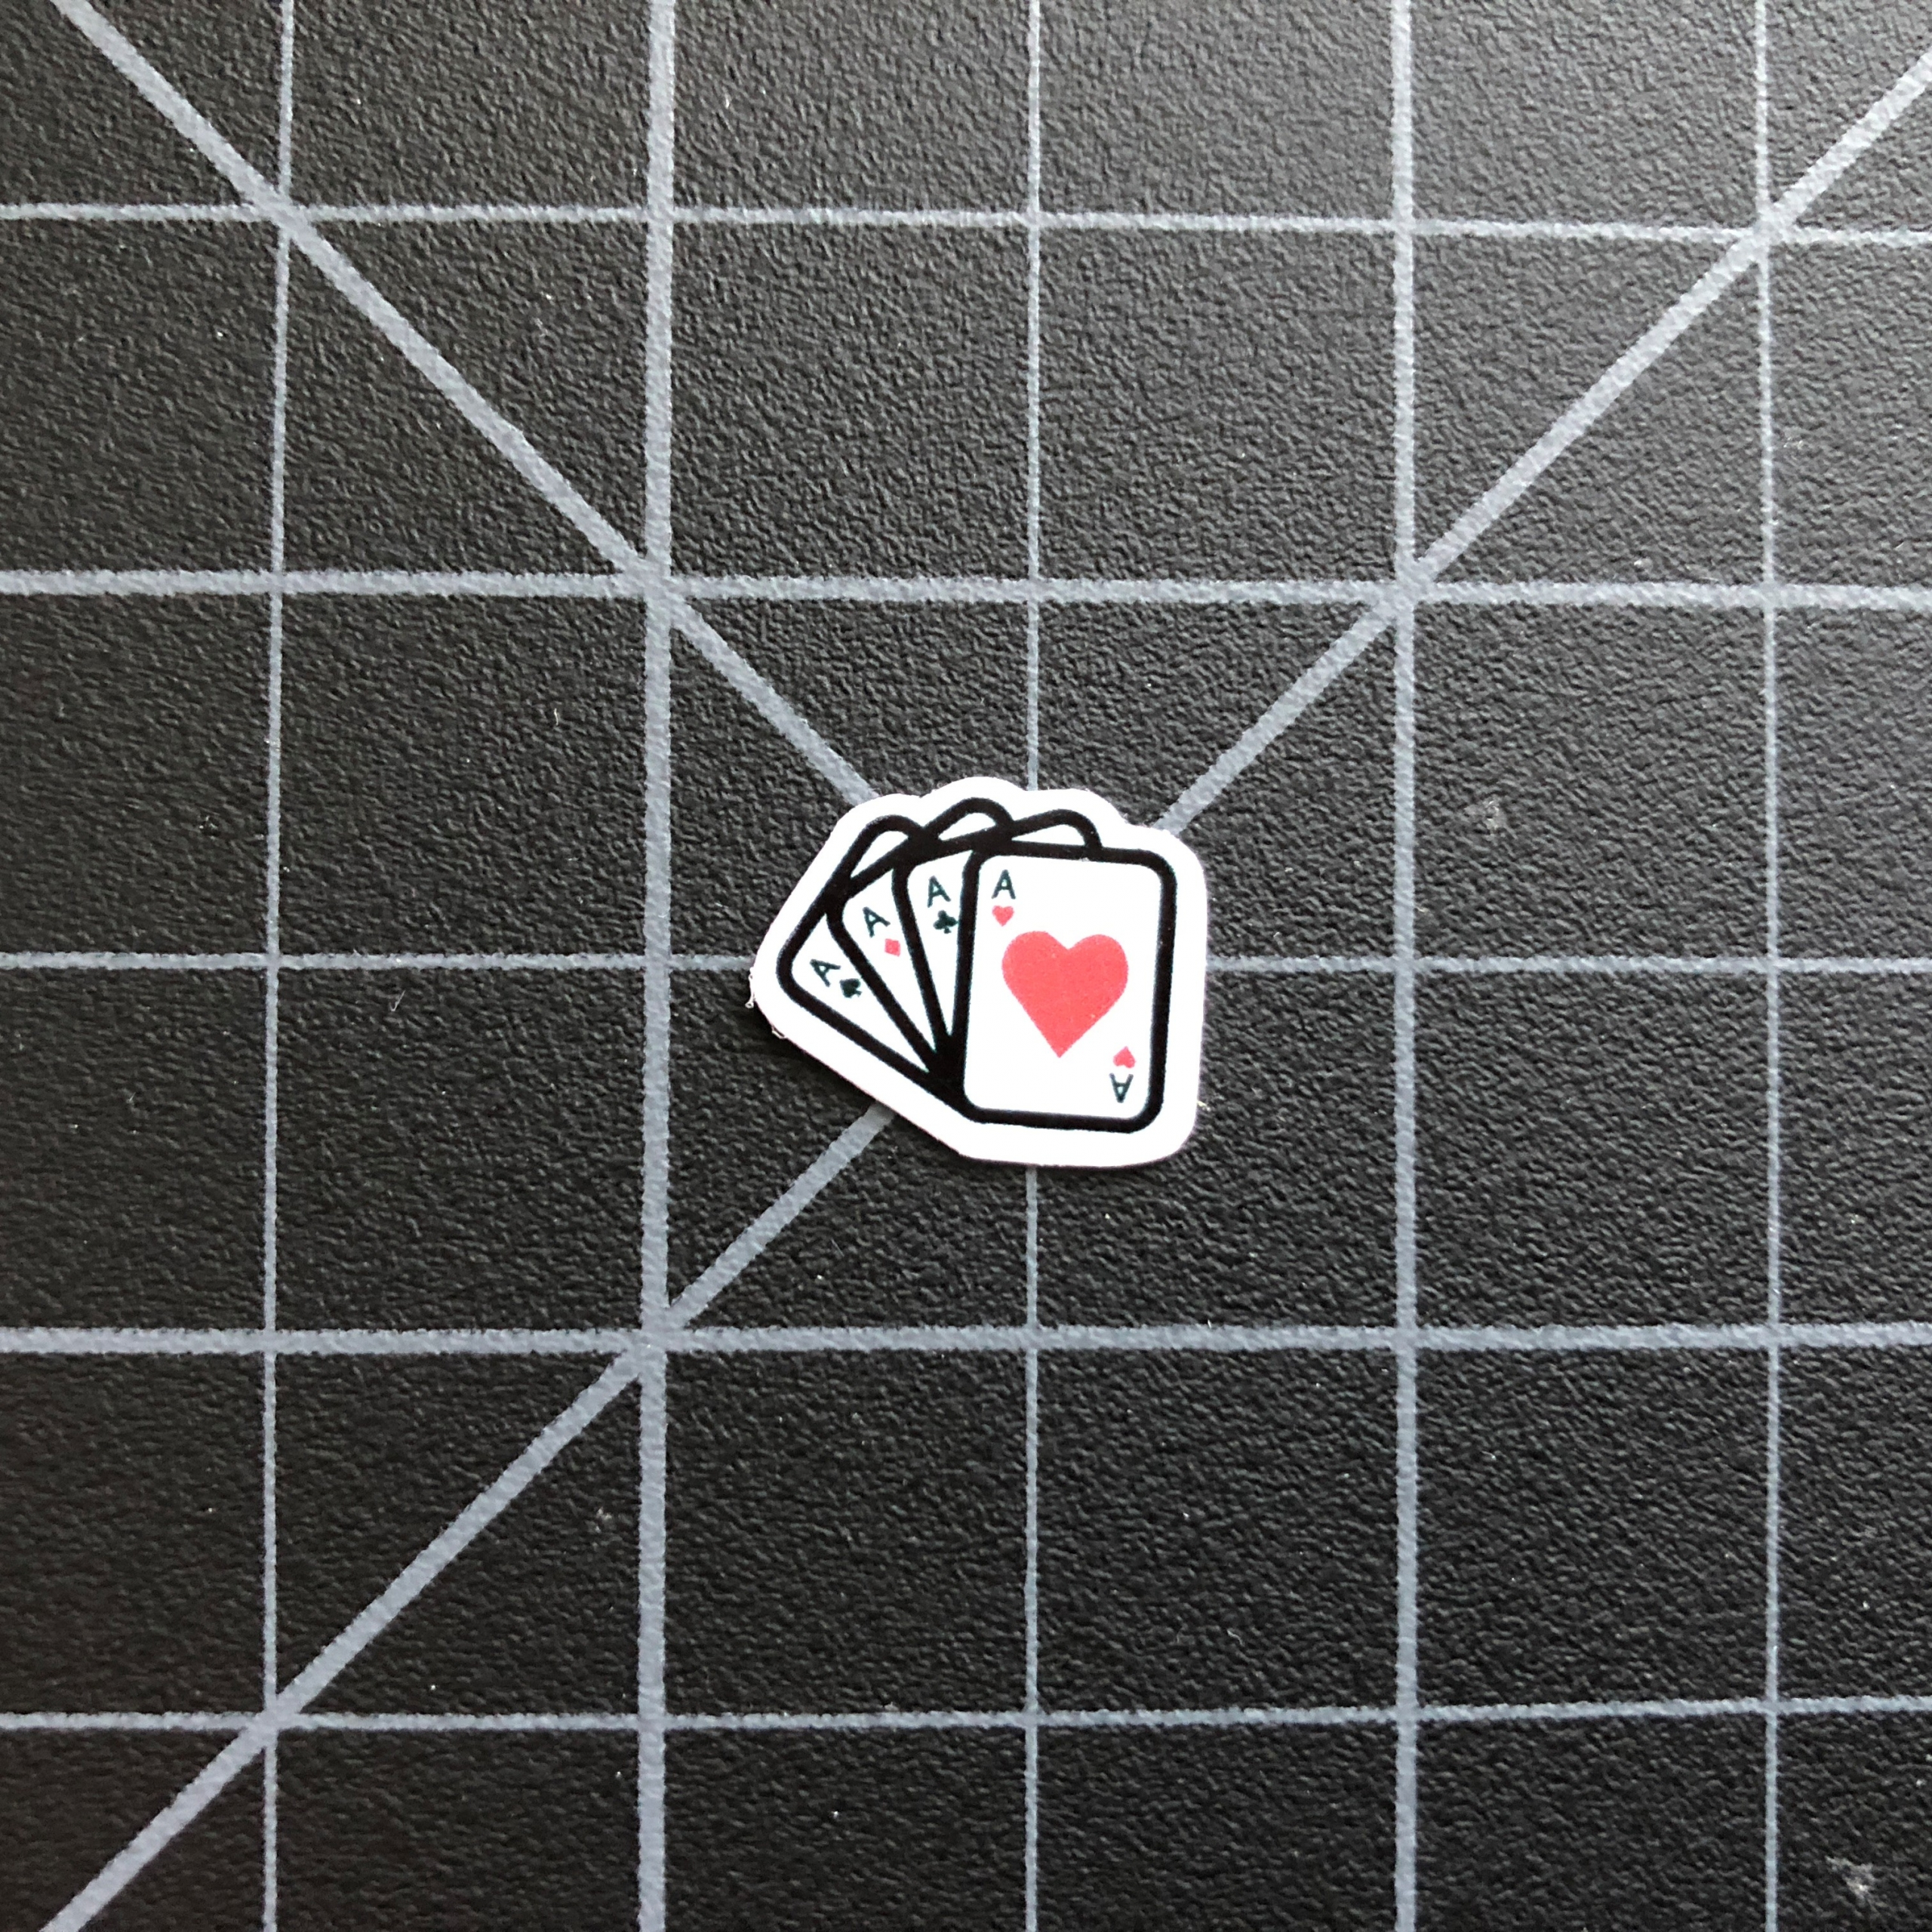 4 Aces - Ace of Hearts Sticker - RC Stickers RC SWAG Custom Stickers